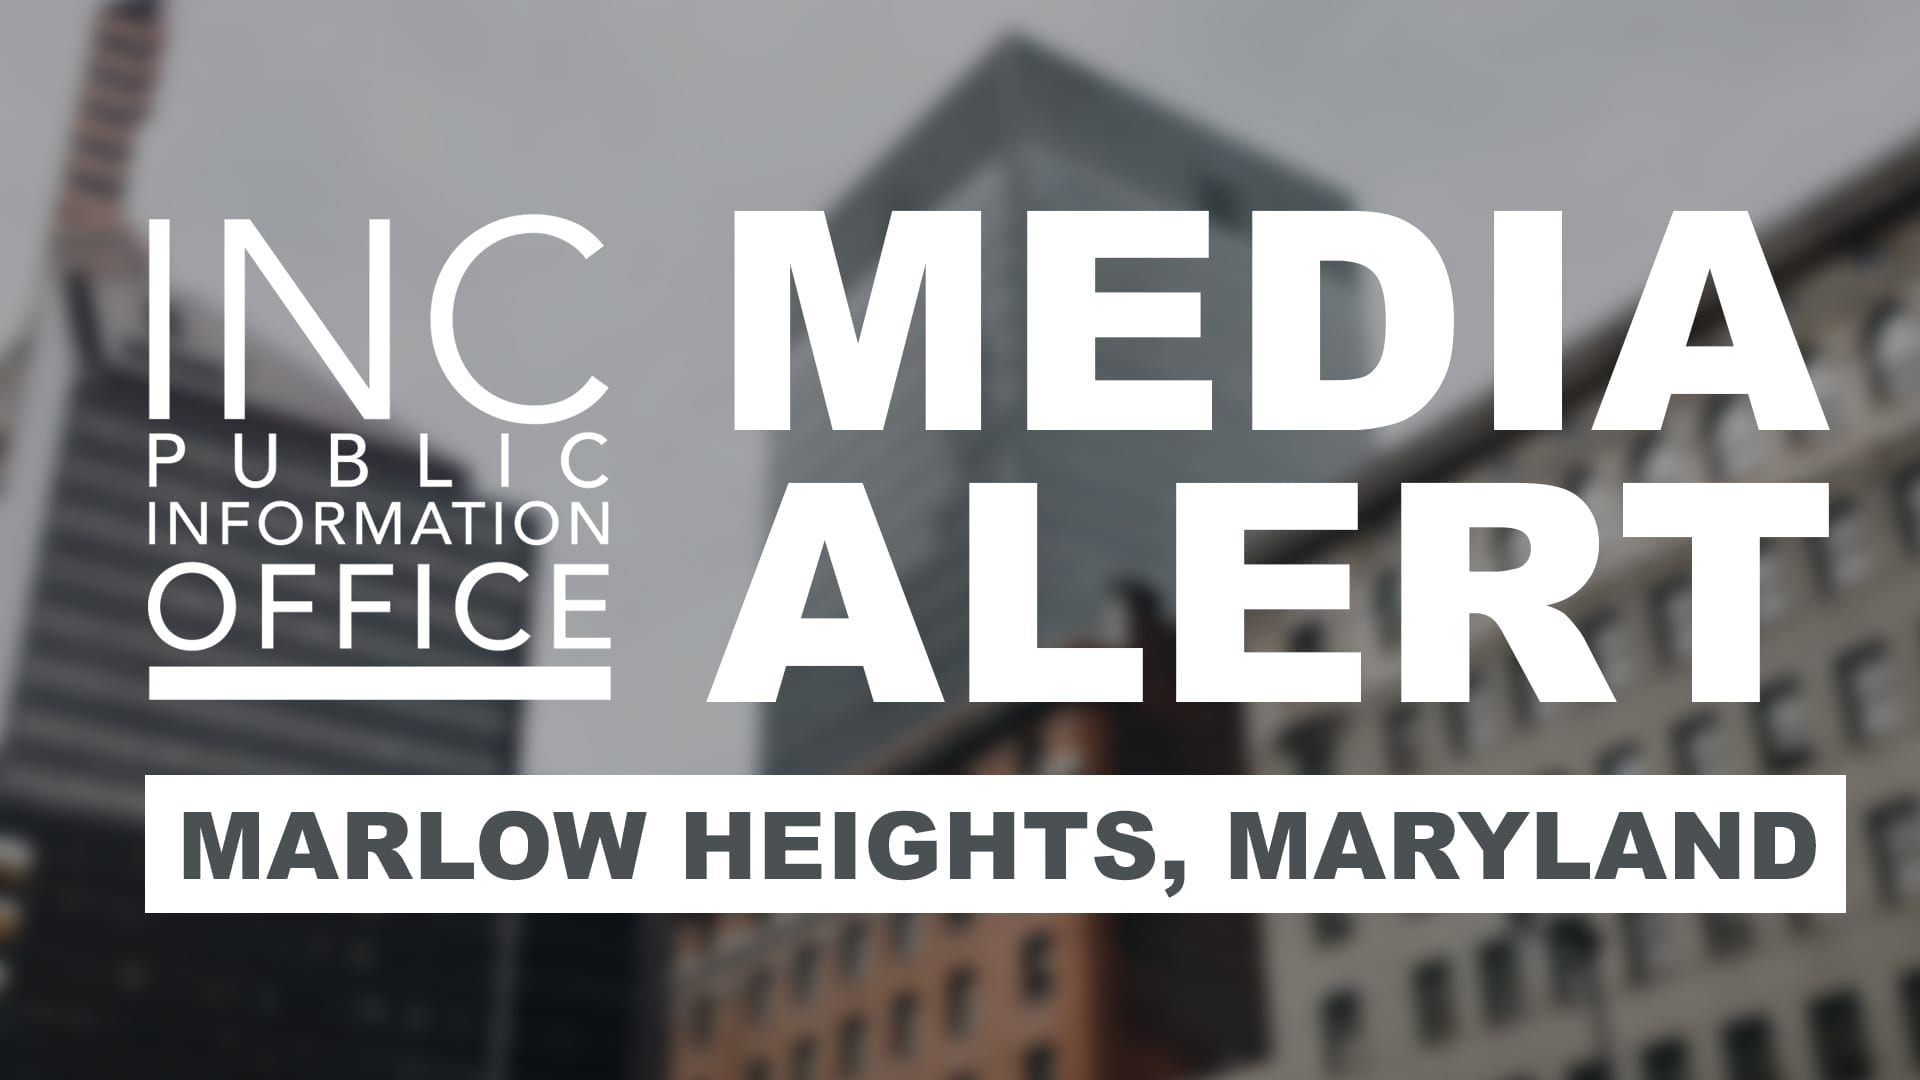 ity scape with text: INC Public Information Office, Media Alert, Marlow Heights, Maryland